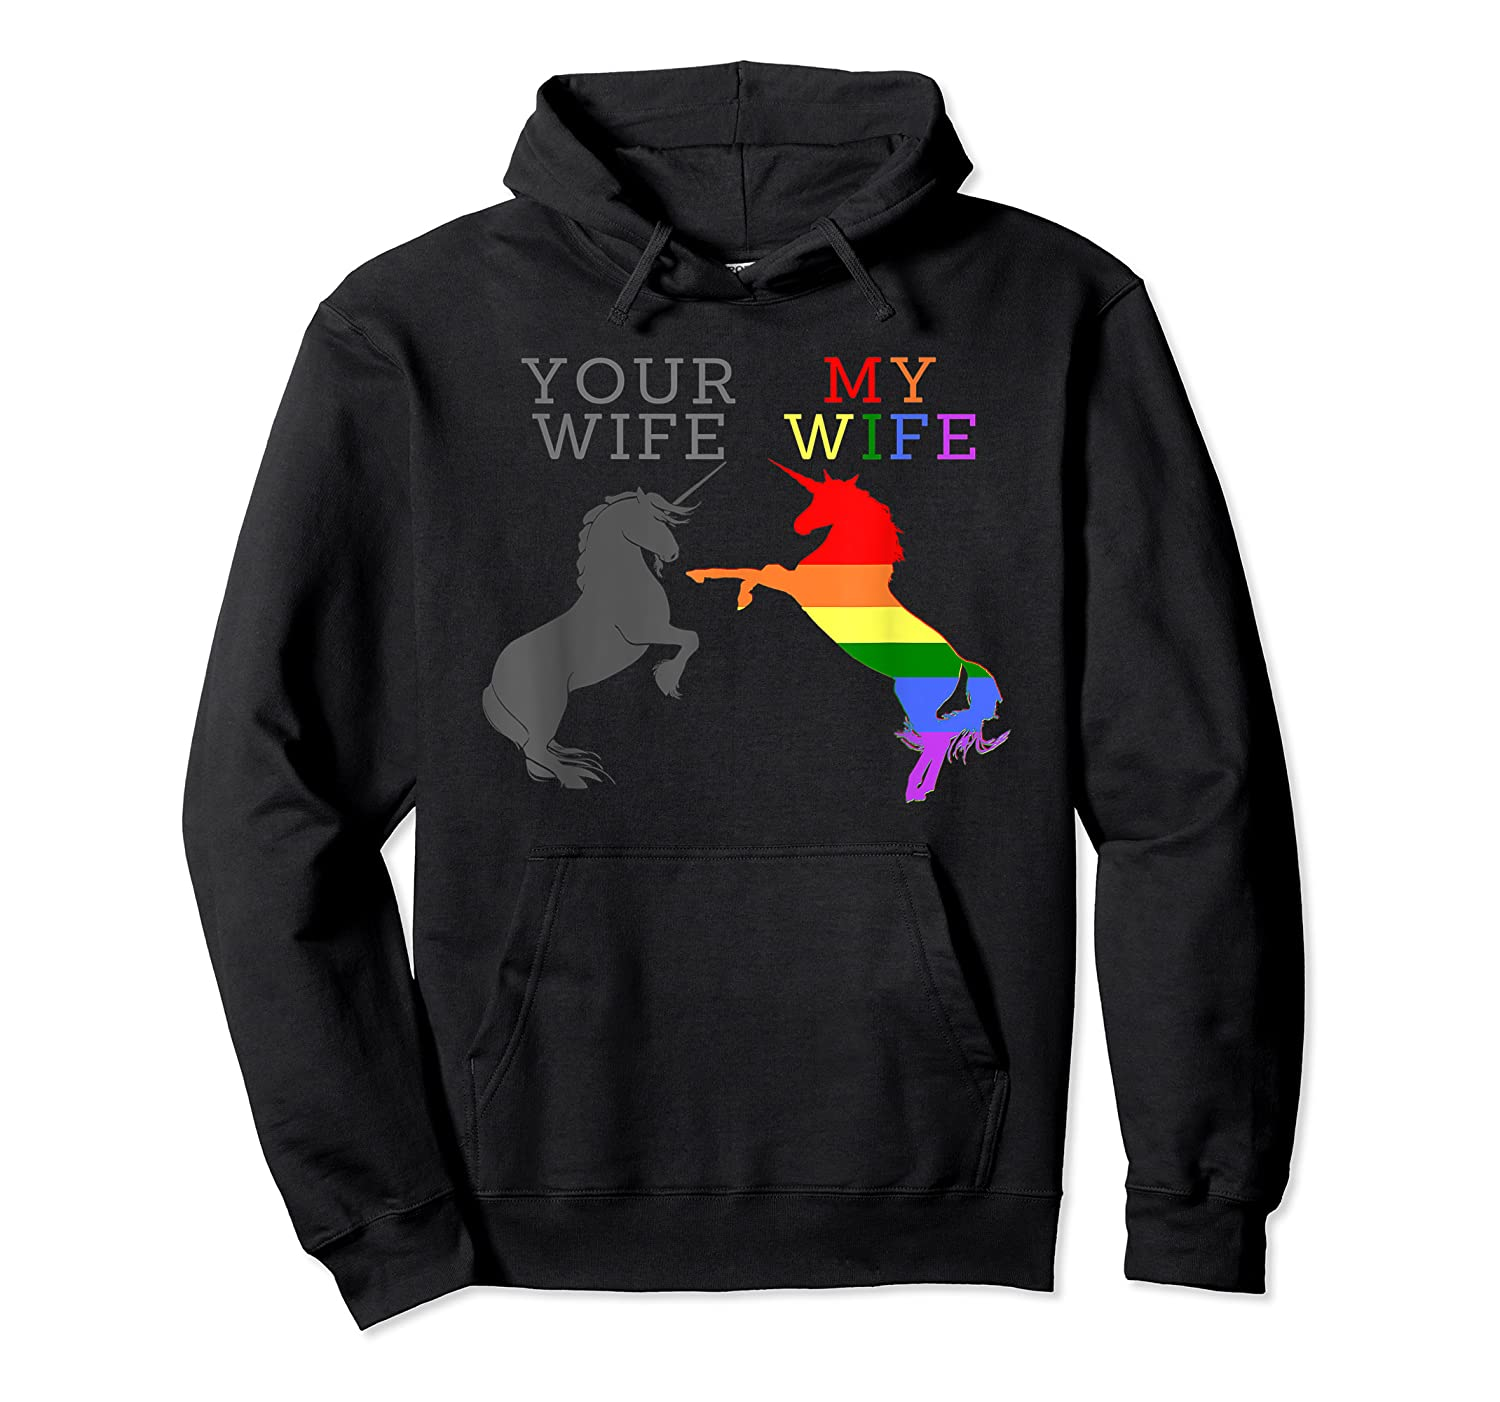 Your Wife My Wife Unicorn Gay Lgbt Pride Month Gifts Shirts Unisex Pullover Hoodie